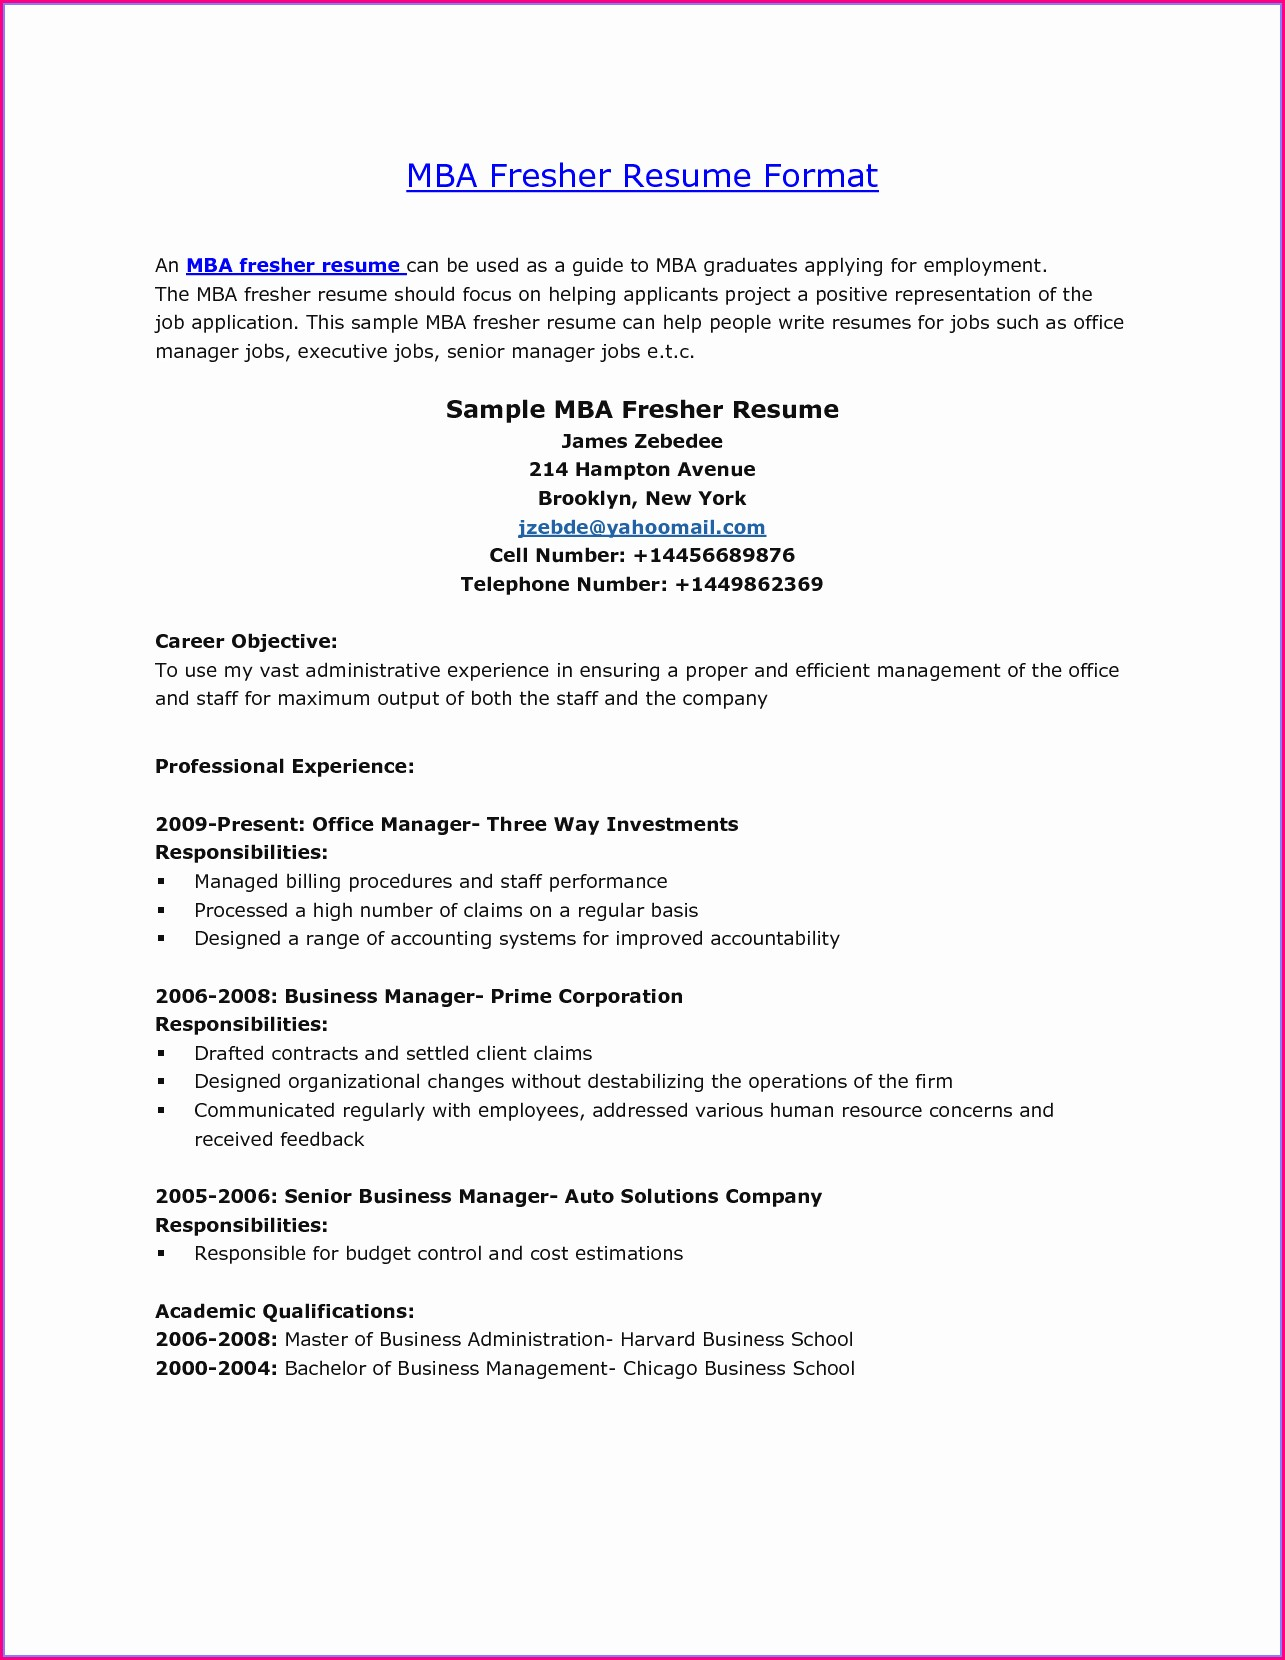 Mba Resume Format For Freshers In Hr